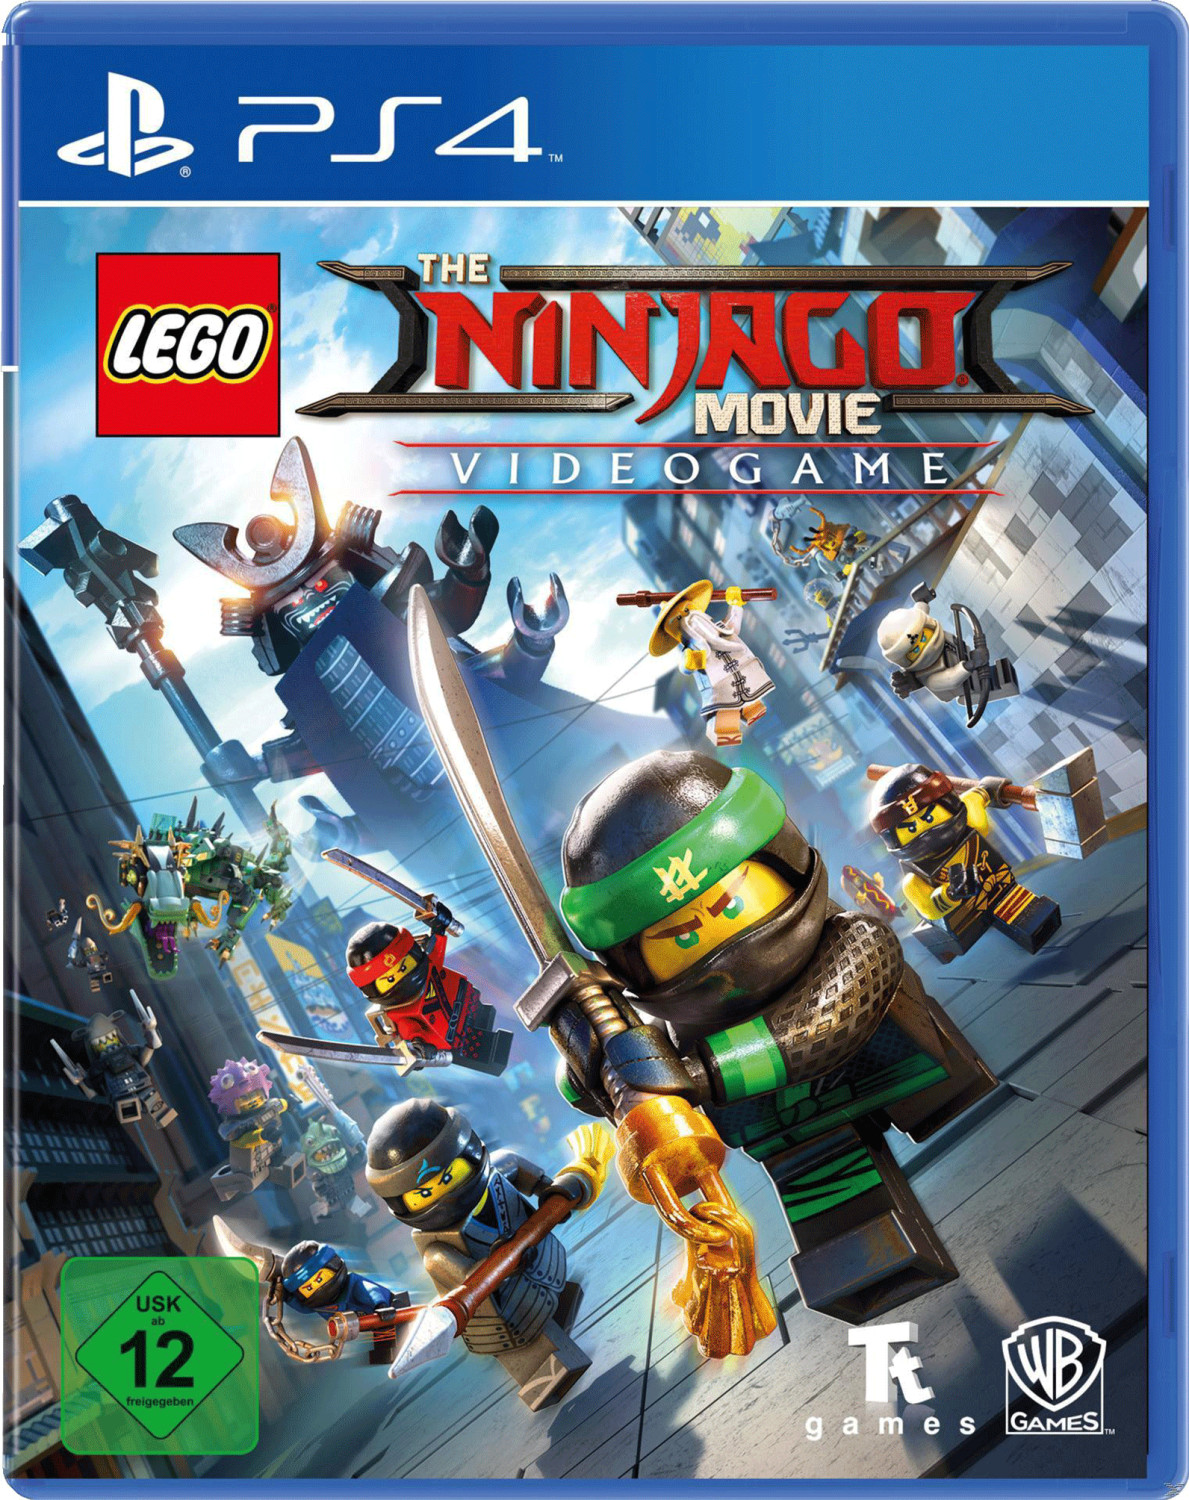 The Lego Ninjago Movie Videogame (PS4)